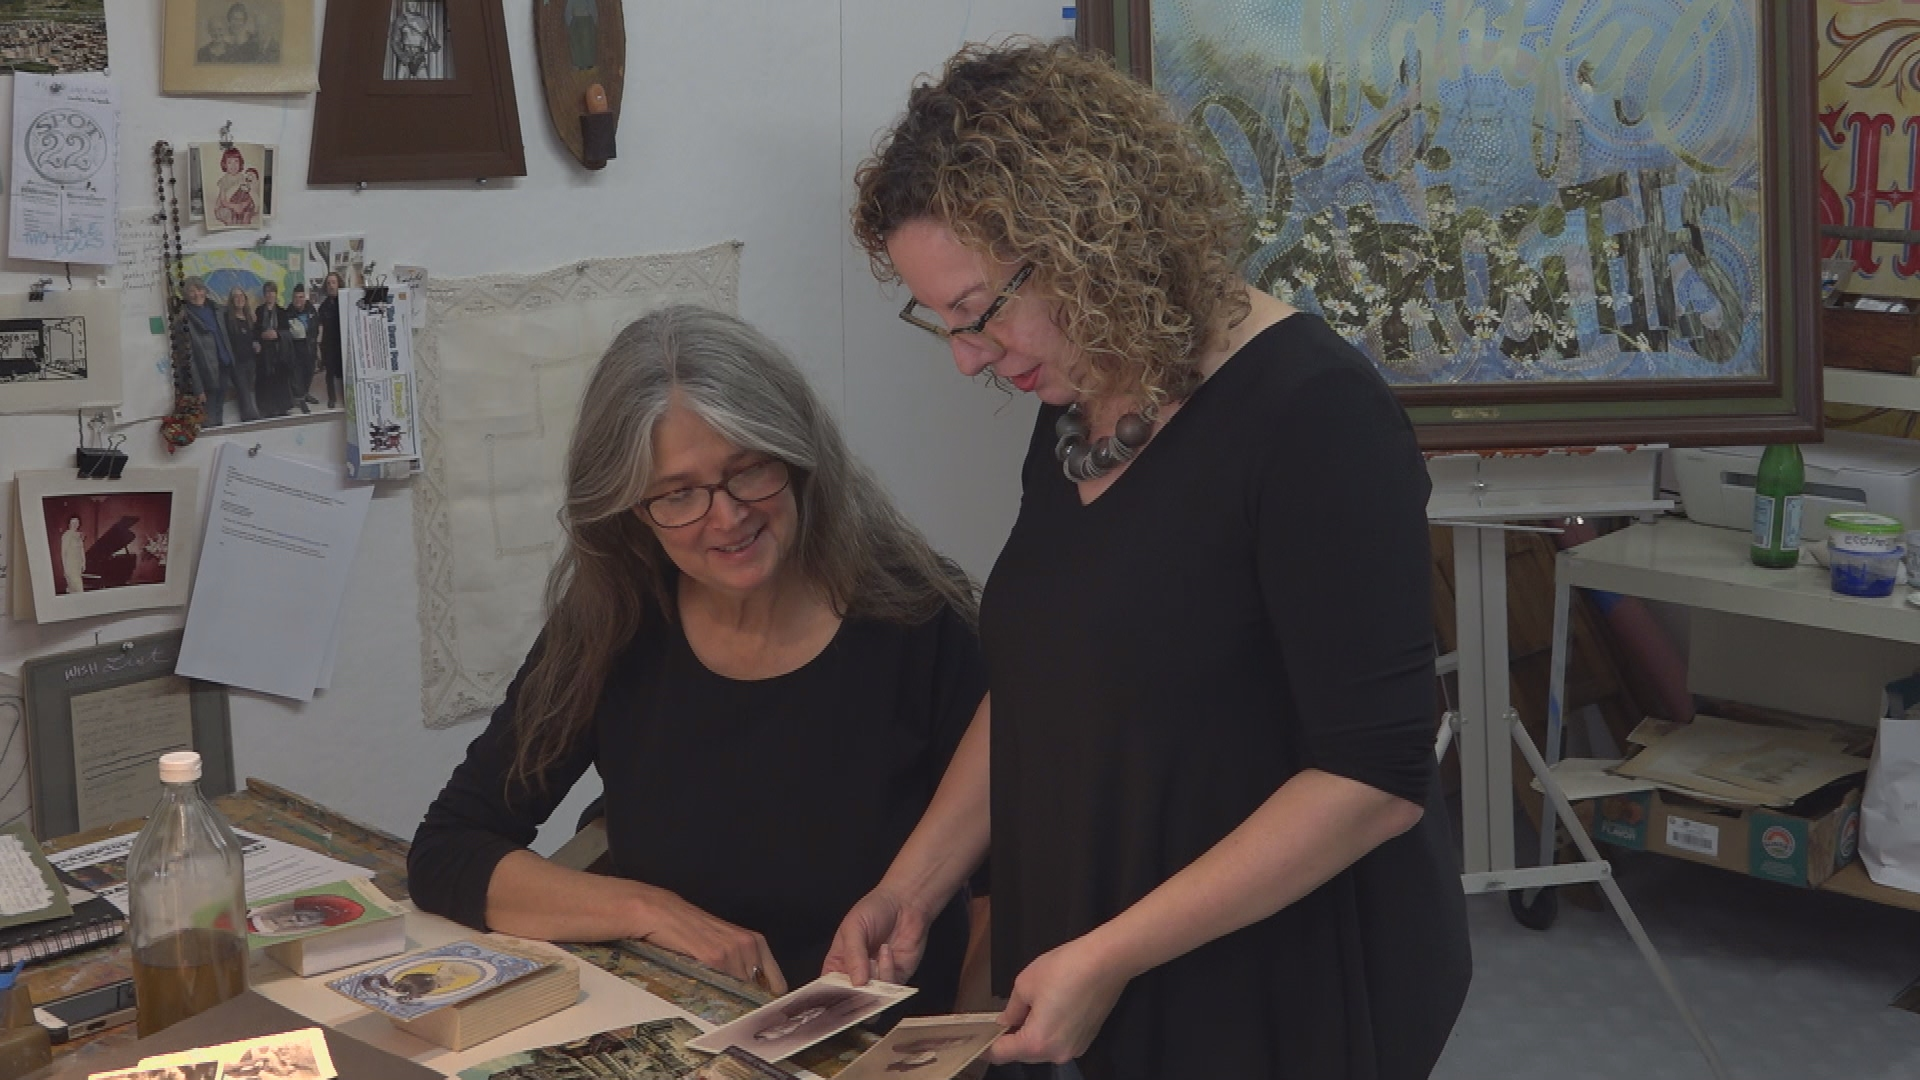 """Vintage photography collector Stacy Waldman & side-show """"Banner Queen"""" artist Amy Johnquest teamed up to open Spot 22 Gallery & studio space in Easthampton."""